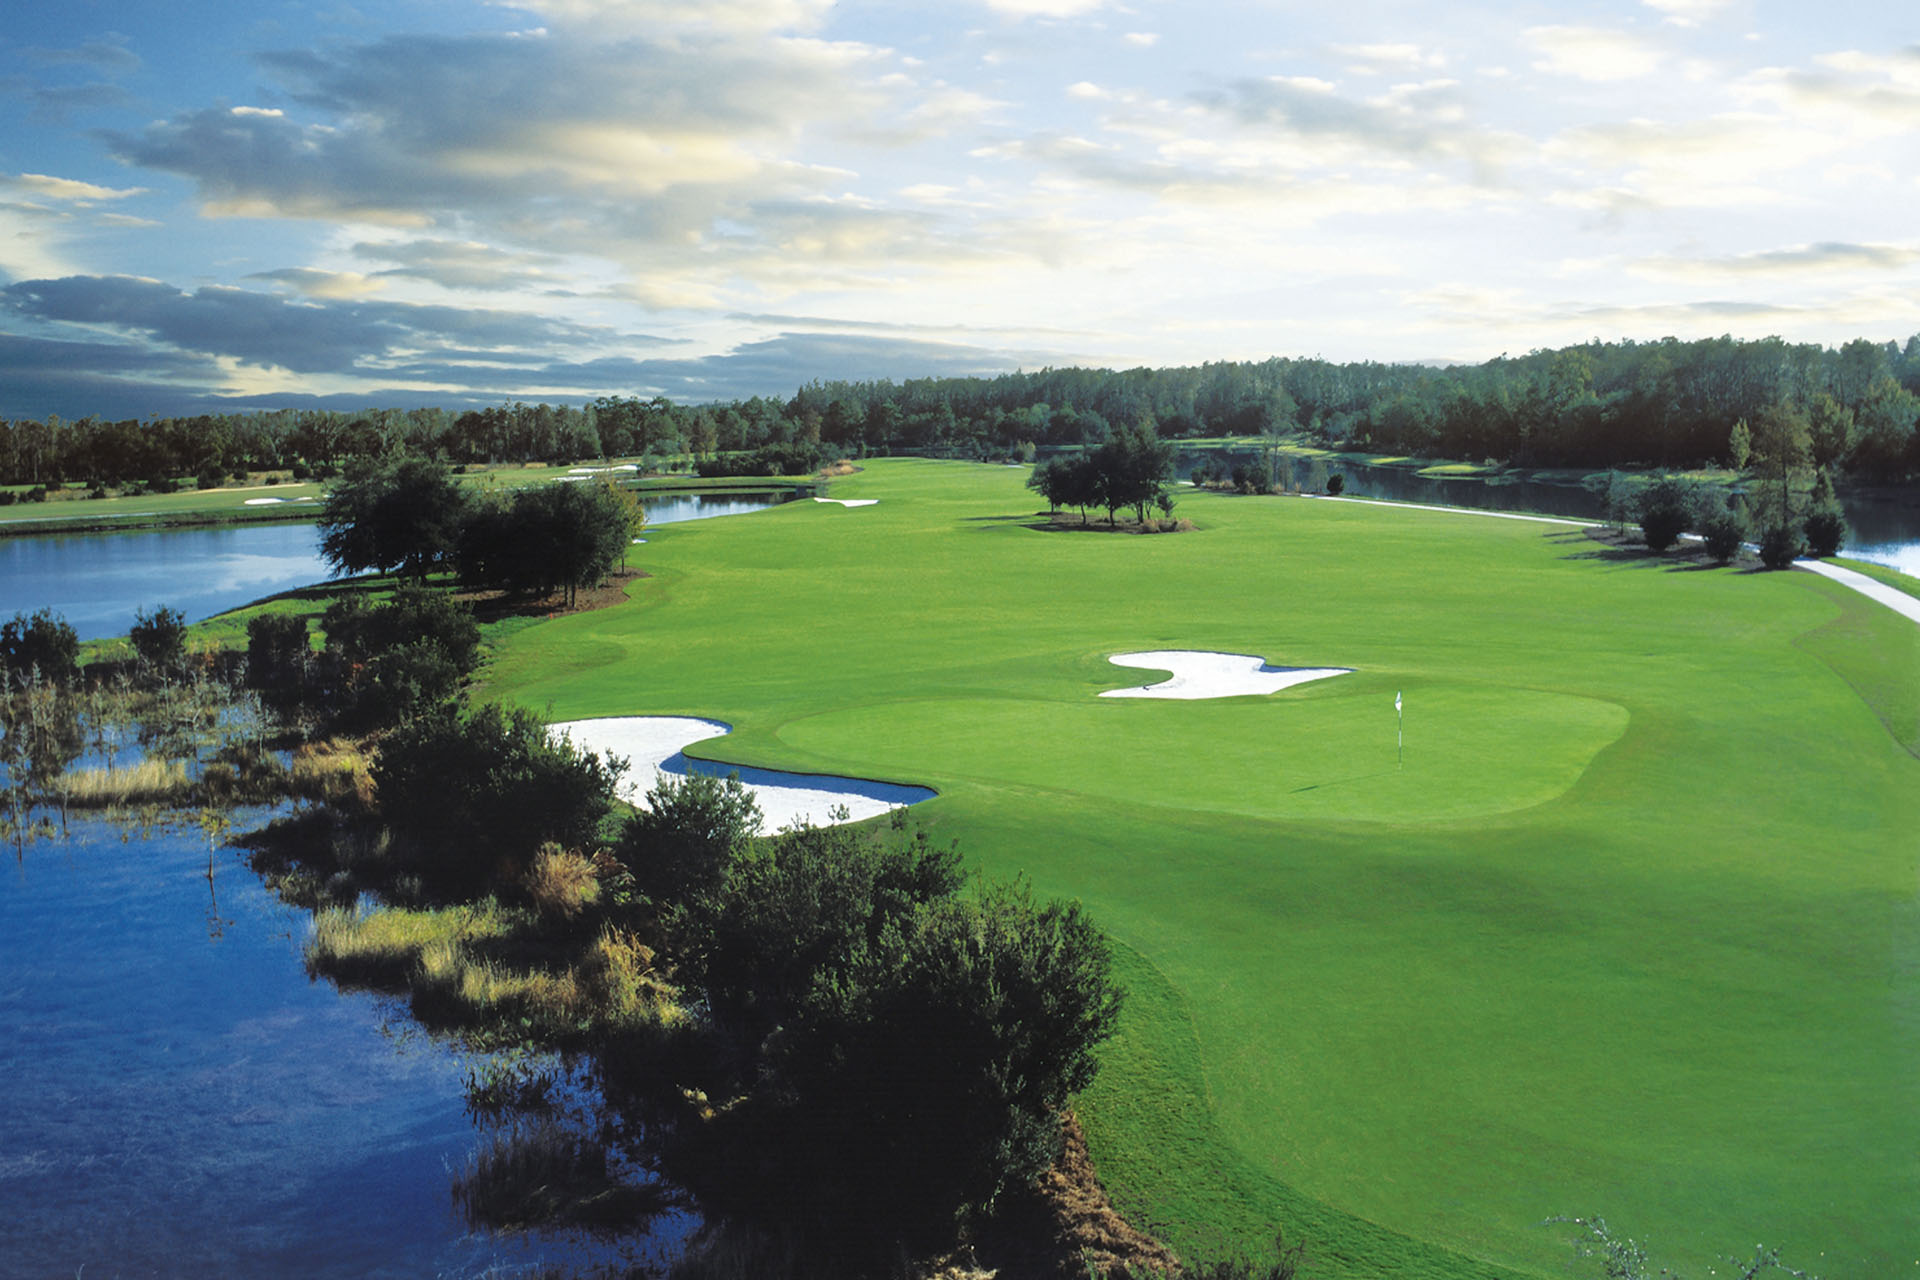 The Ritz-Carlton Golf Club